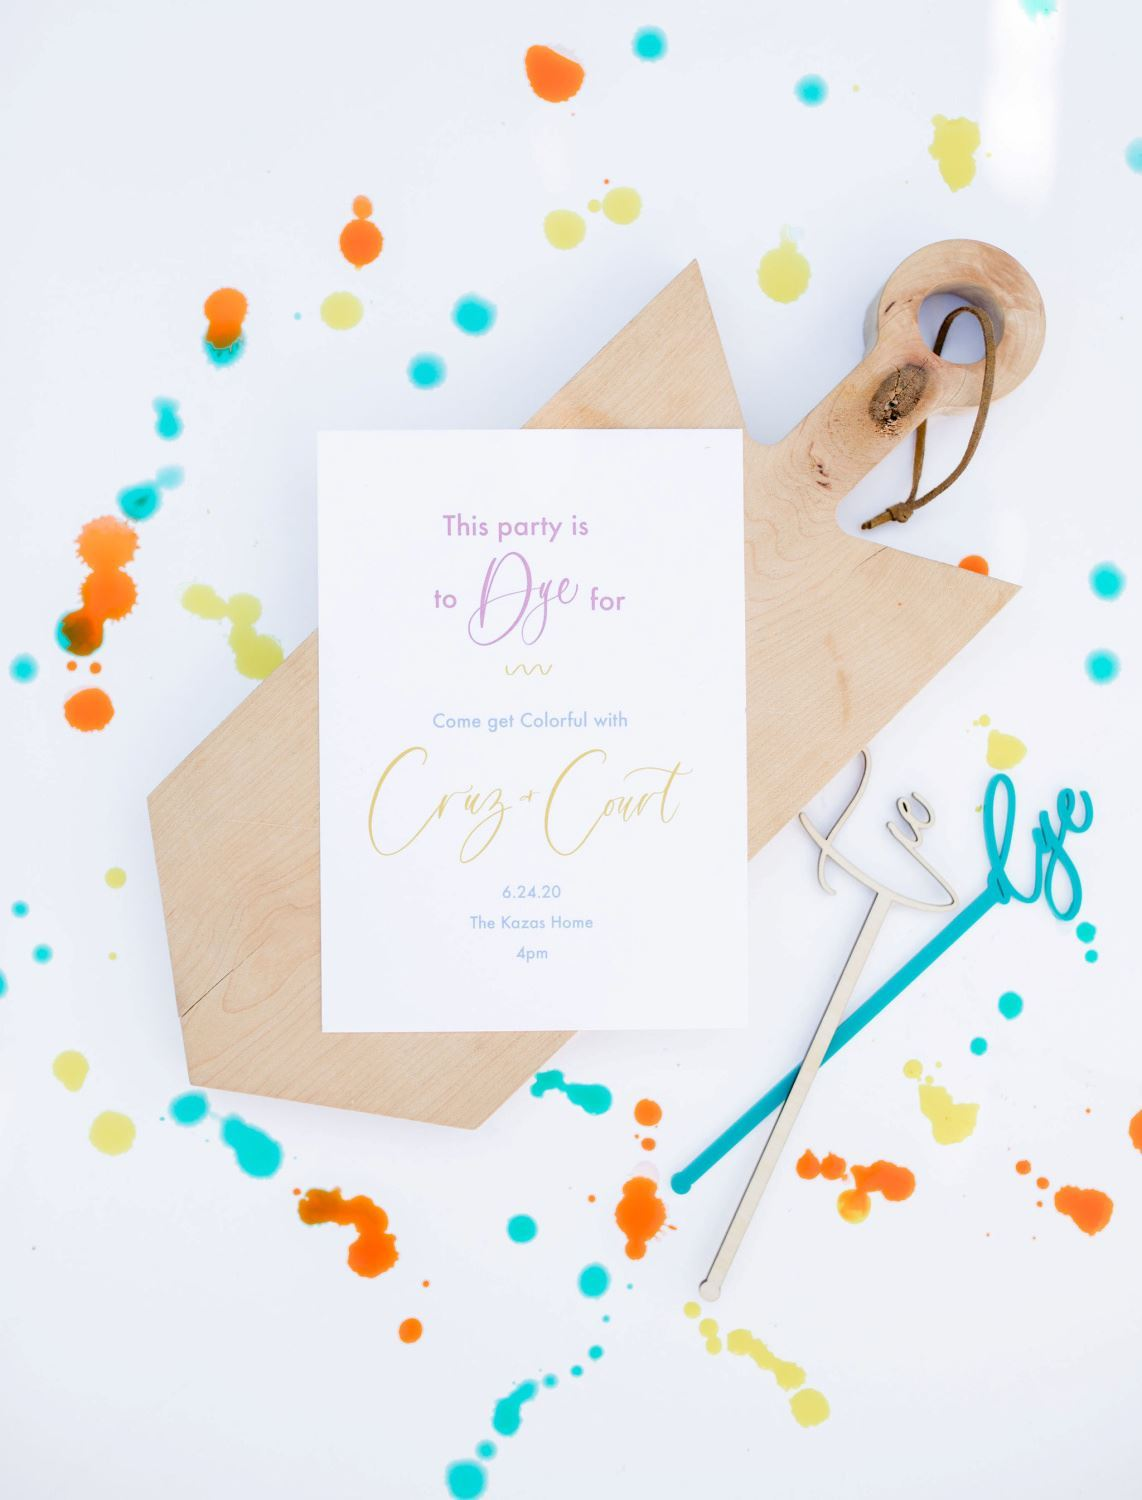 Tie-dye party invitations